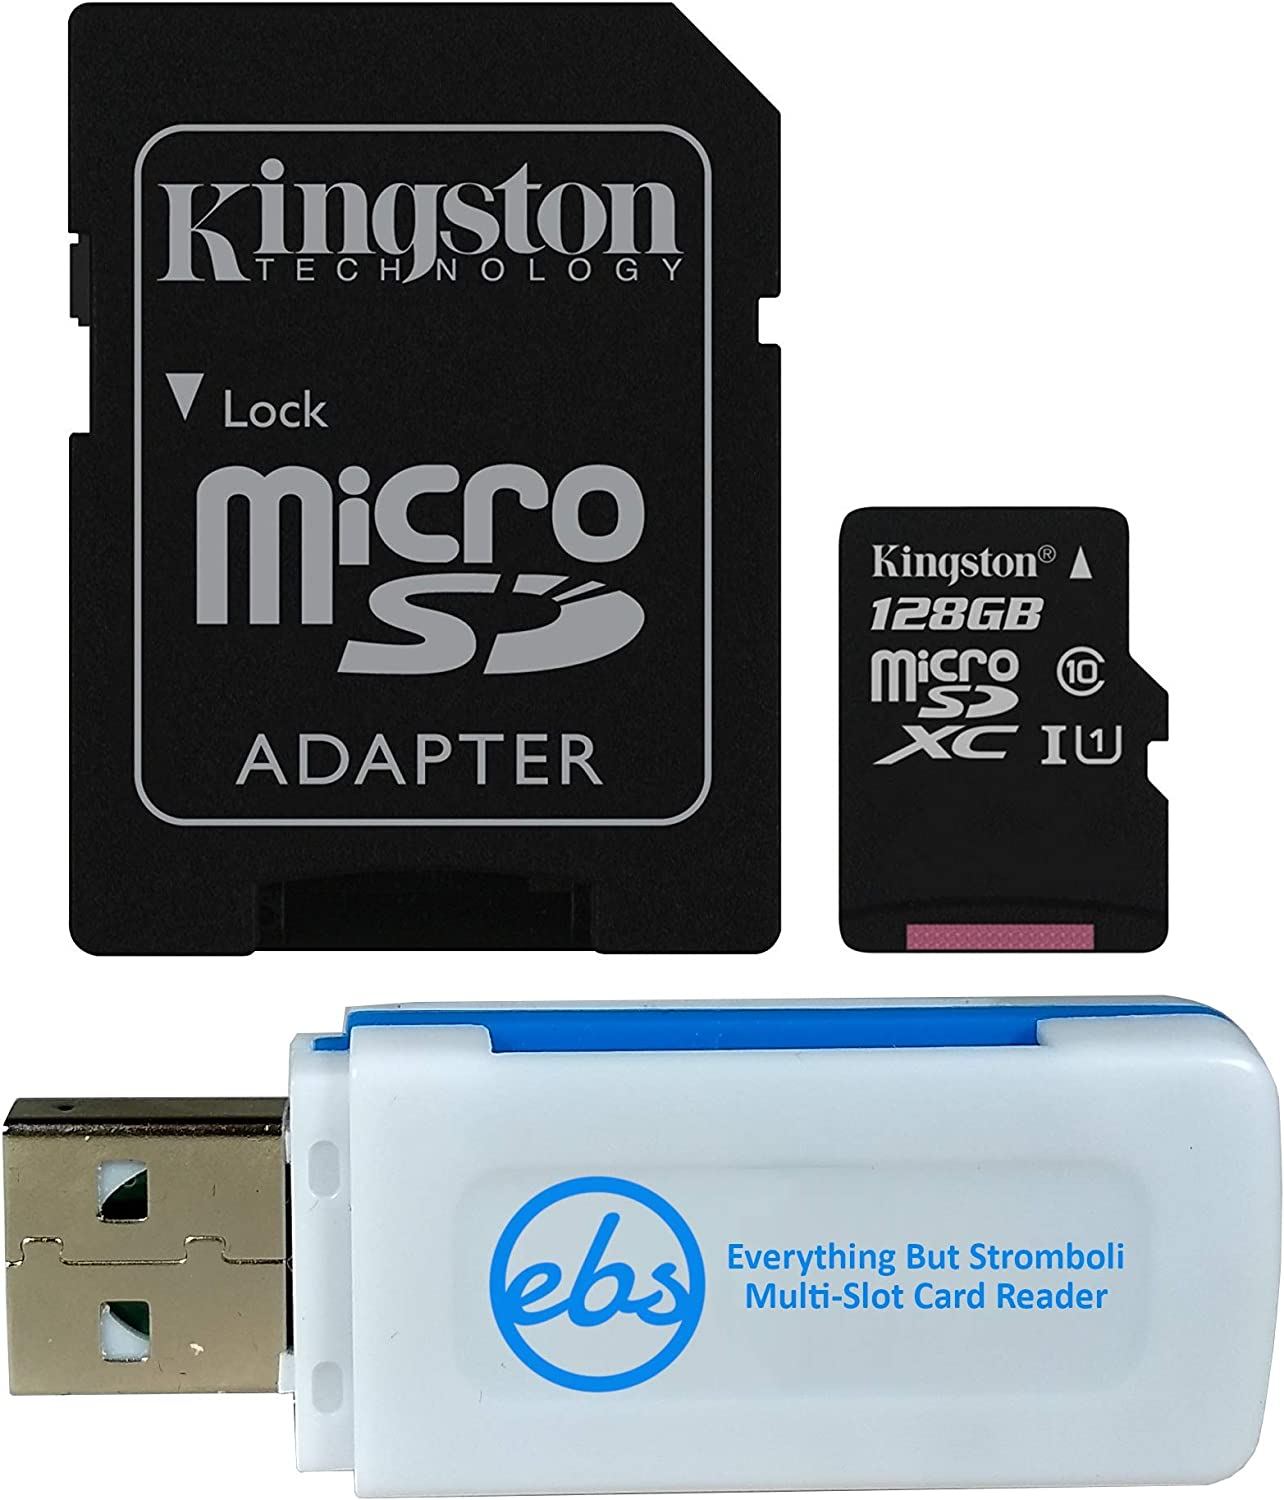 100MBs Works with Kingston Kingston 128GB Samsung SM-T590 MicroSDXC Canvas Select Plus Card Verified by SanFlash.